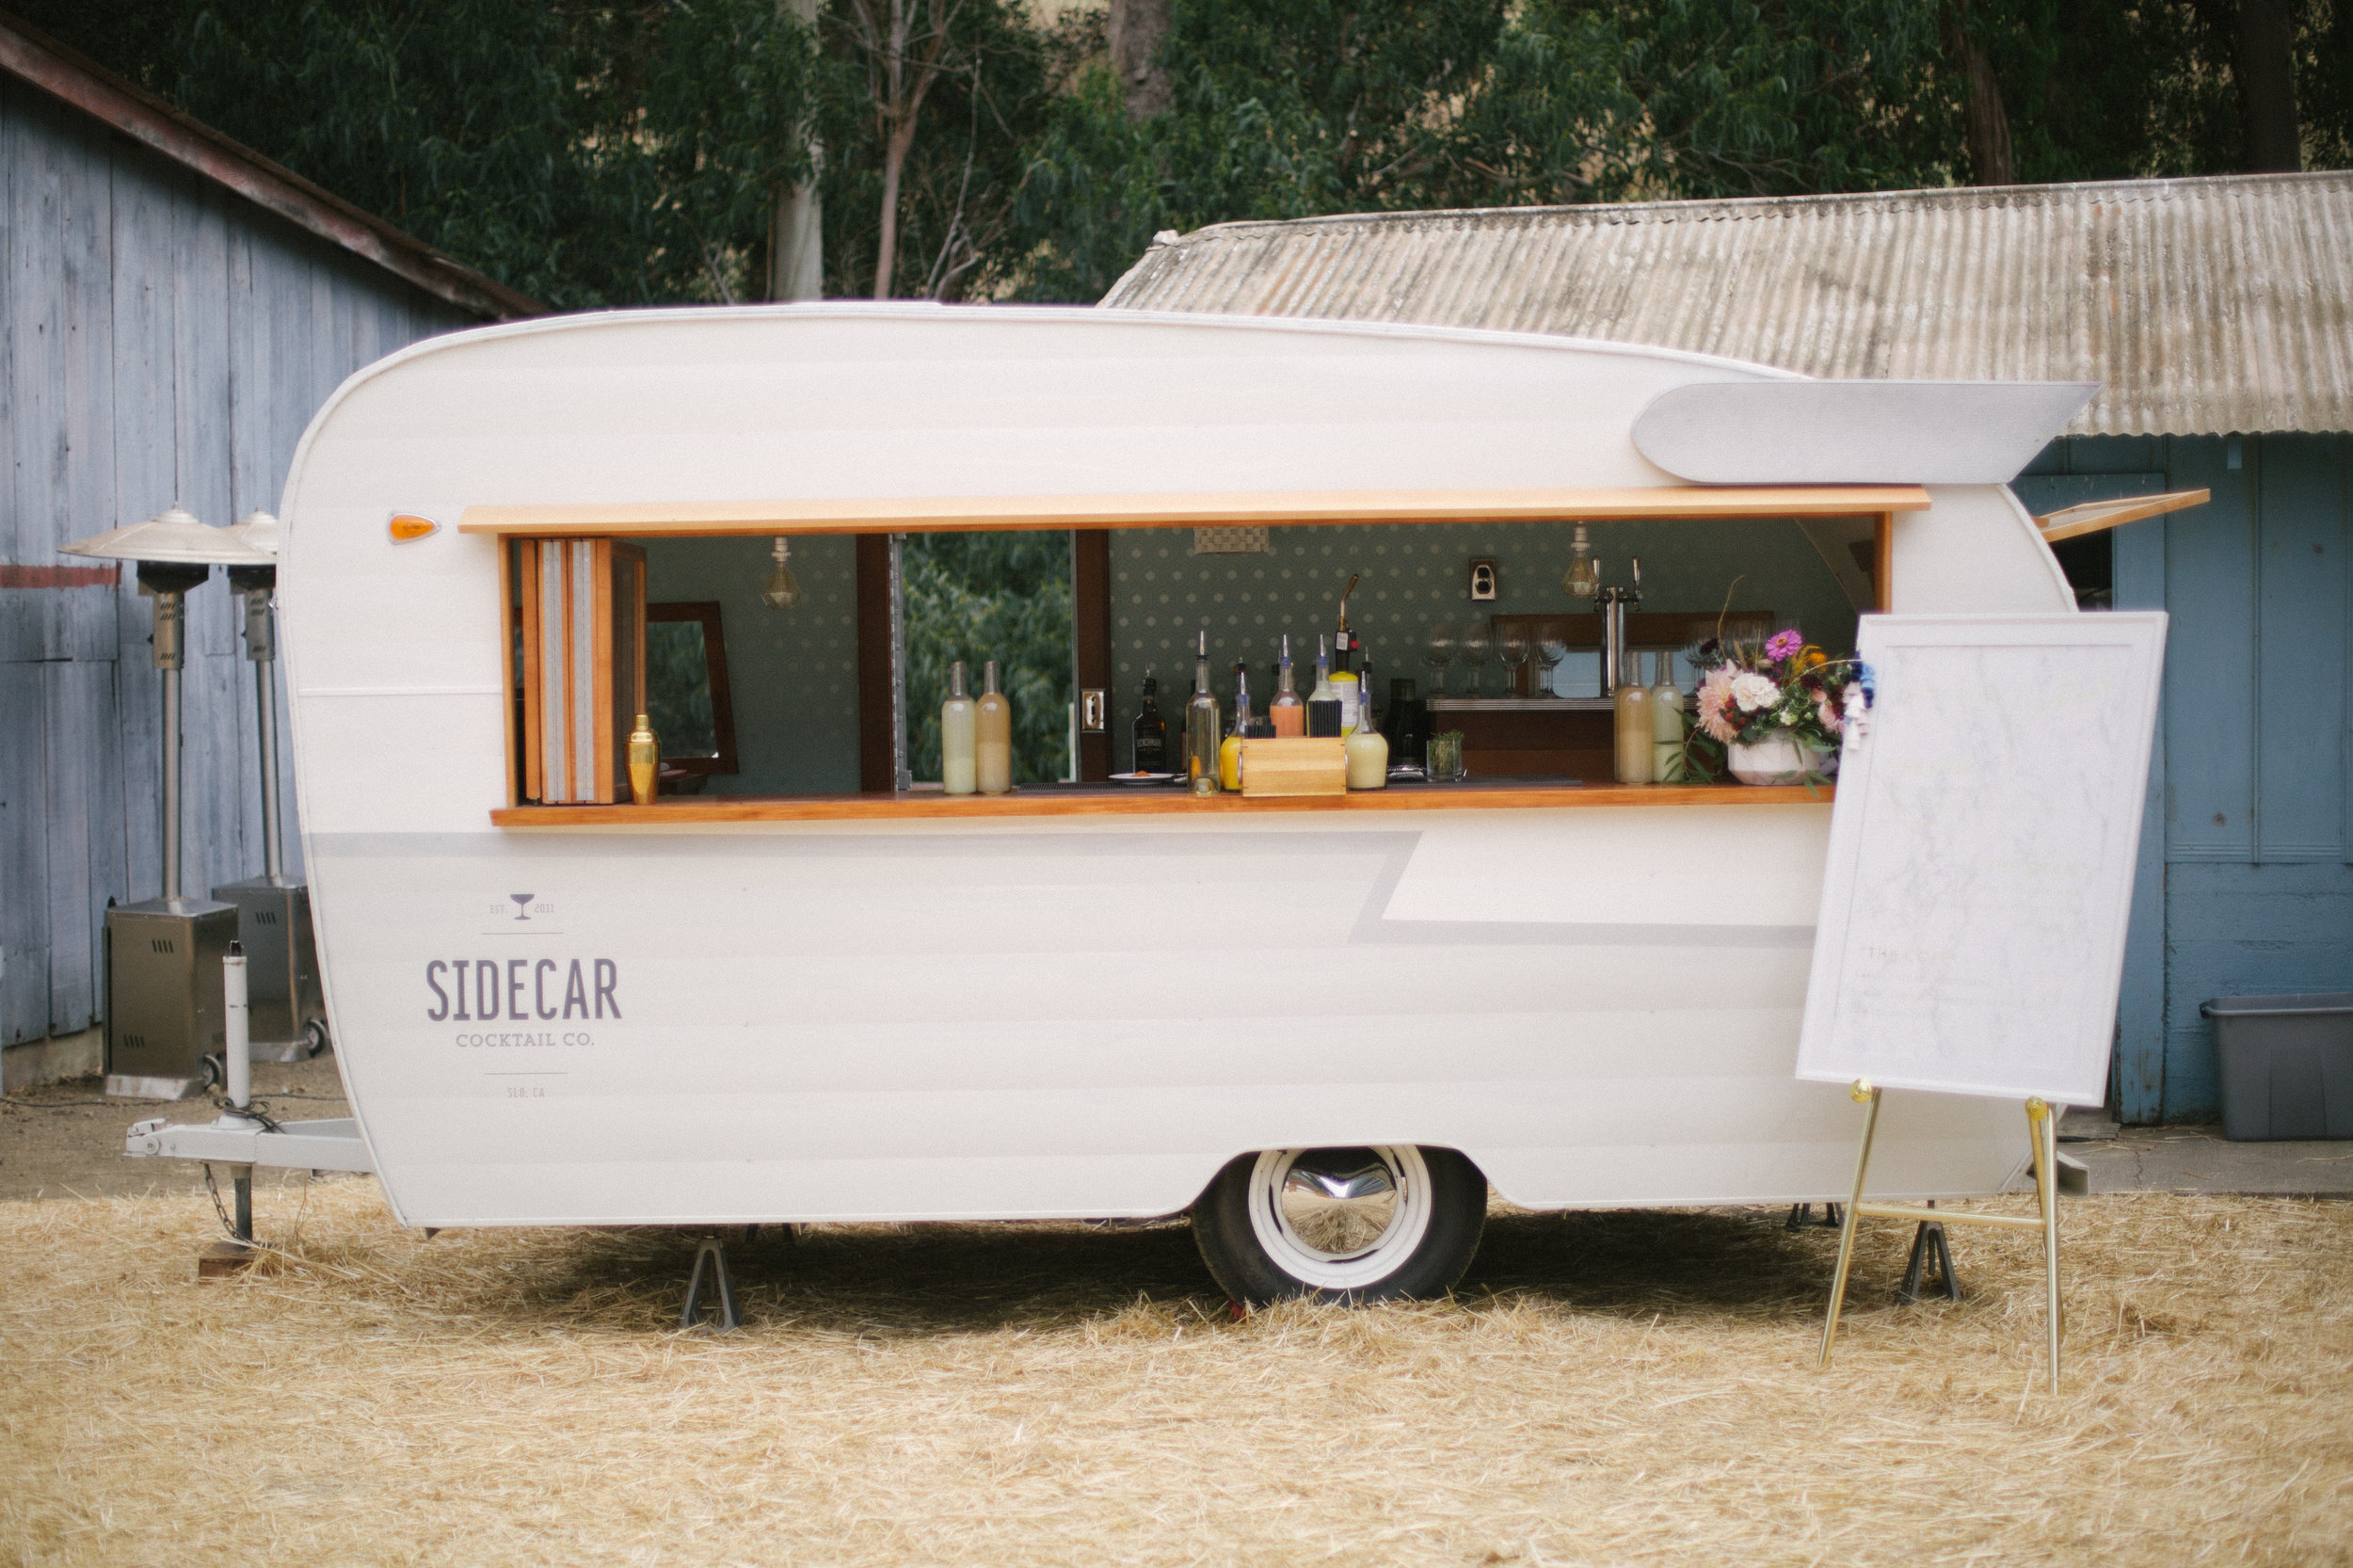 1960'S SHASTA VINTAGE BAR TRAILER AVAILABLE FOR MOVIE AND PRODUCTION RENTALS, FOR BACKSTAGE LOUNGES, FILMING, TV & MOVIES, FOR HAIR AND MAKEUP, COMMERCIAL AND CATALOGUE PHOTO SHOOTS & MORE